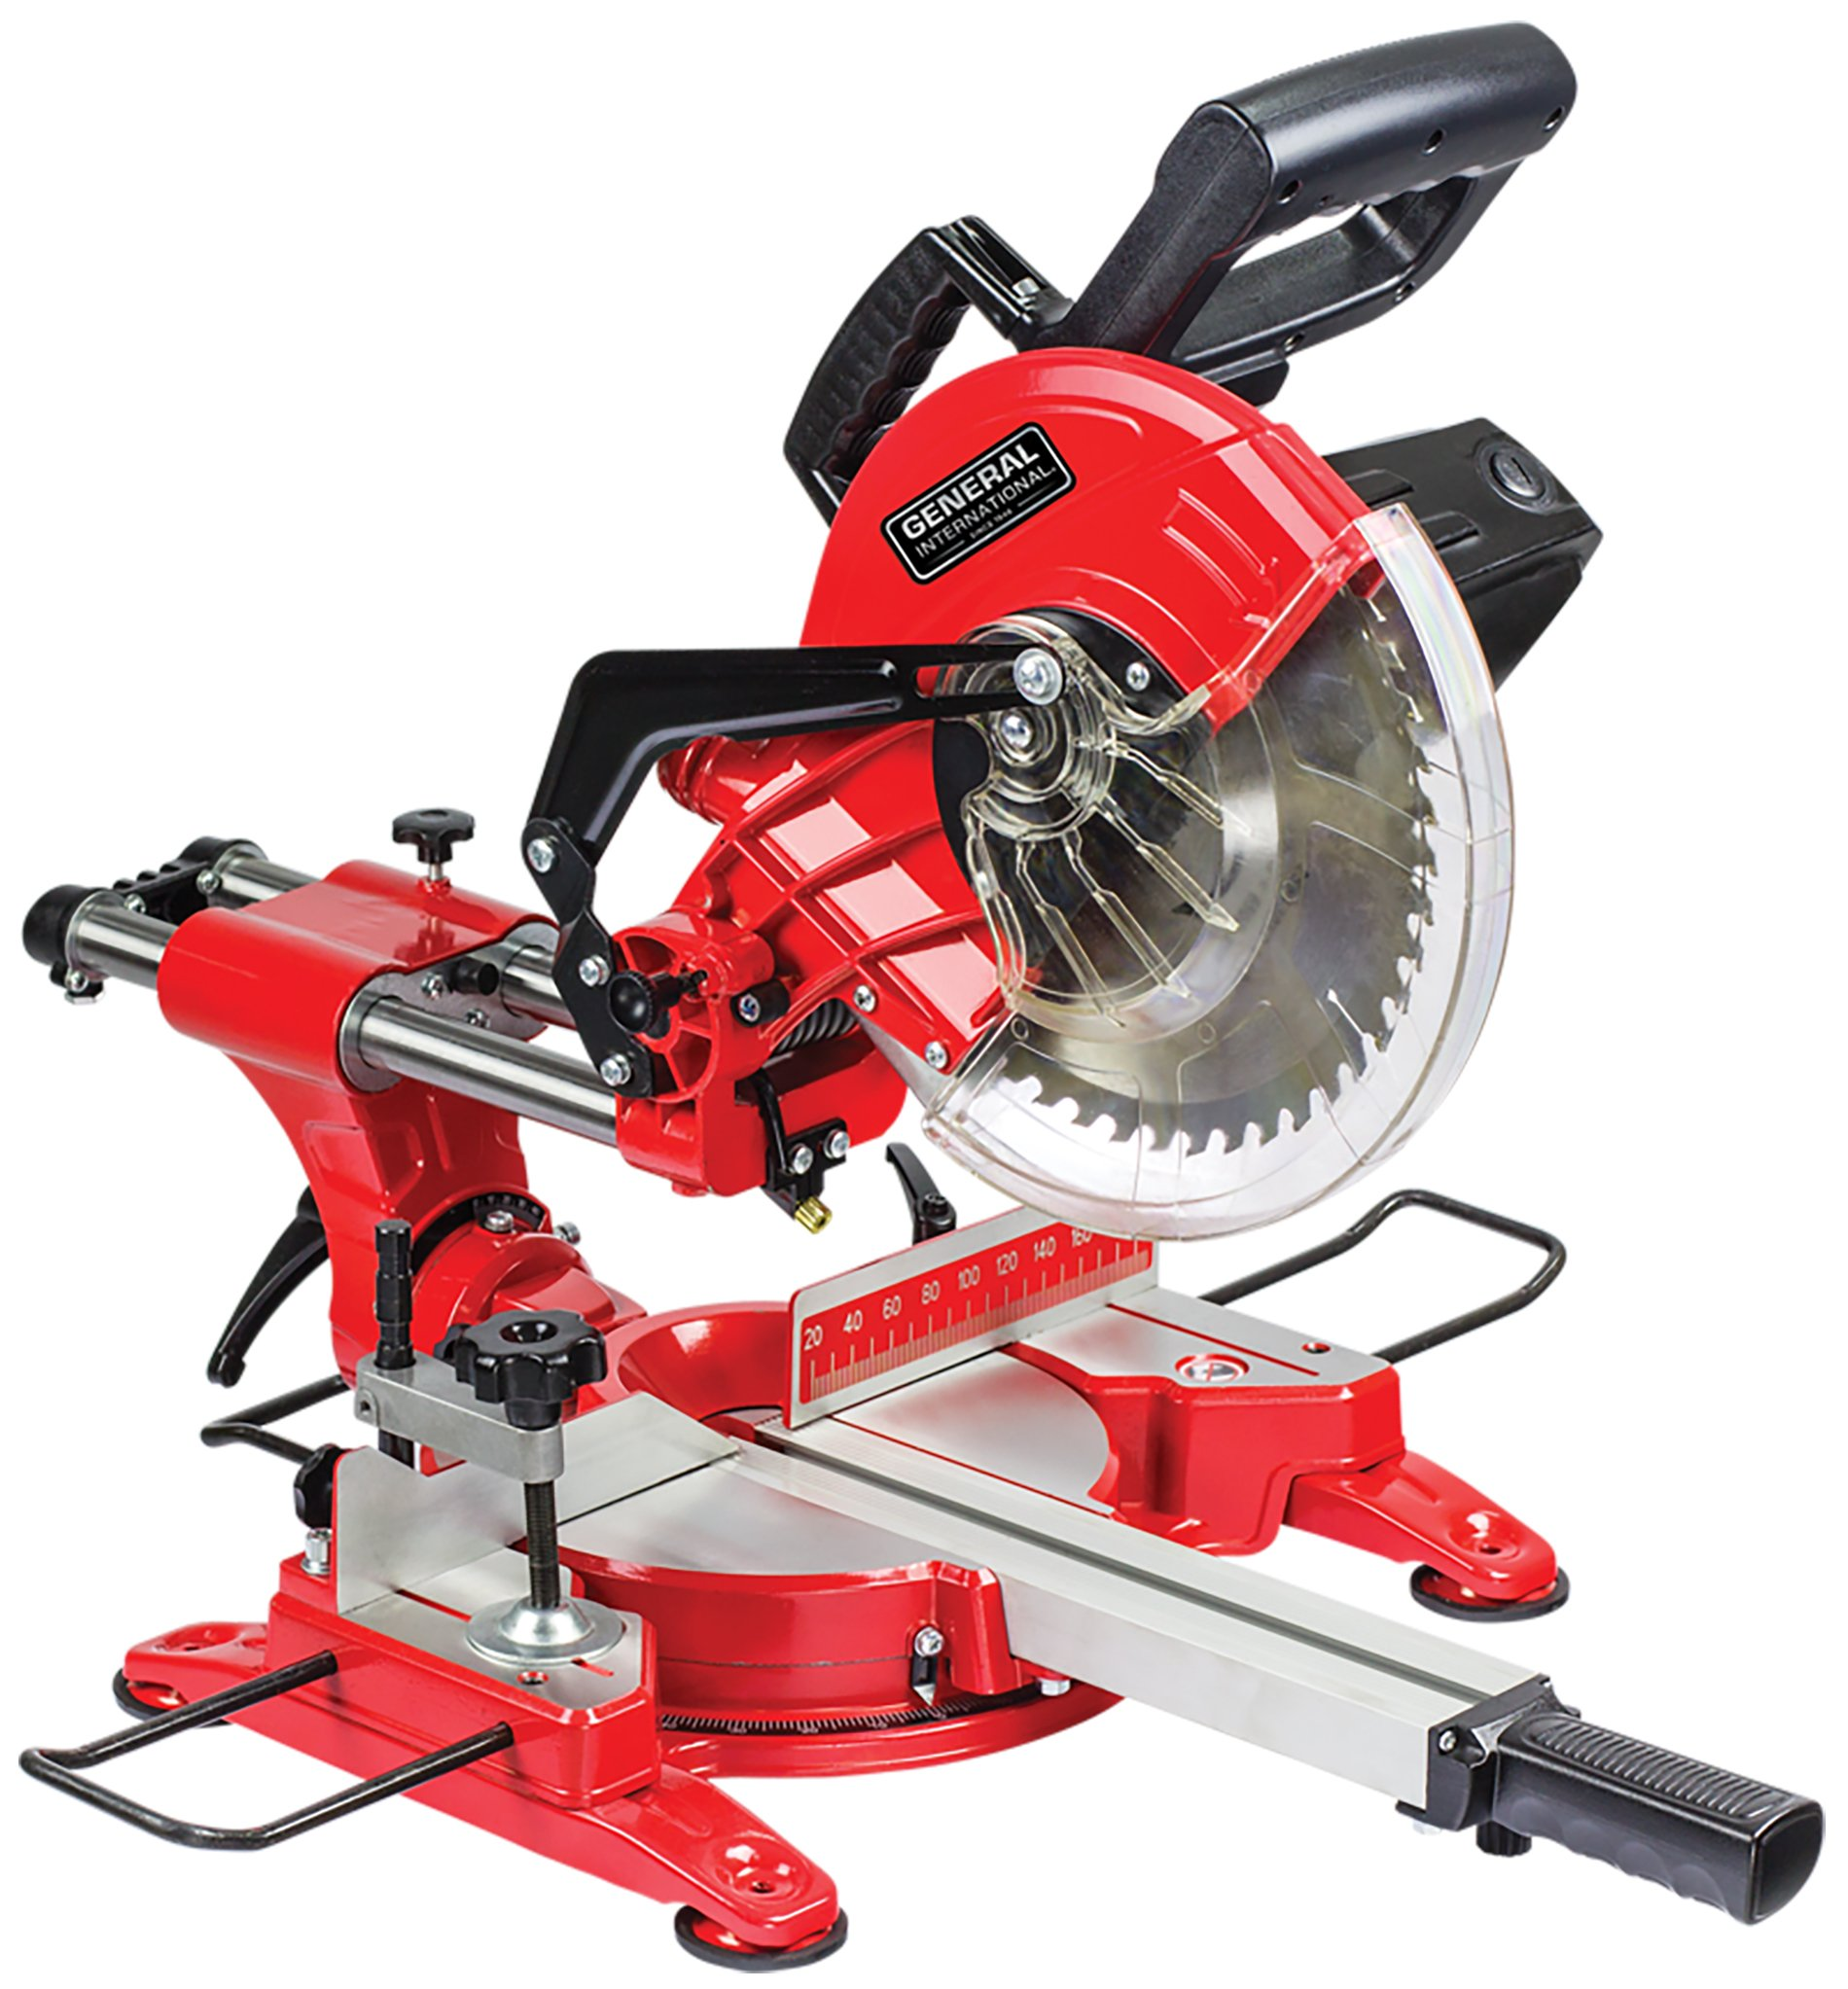 General Intl. Power Products MS3005 10'' Sliding Miter Saw by General Intl. Power Products